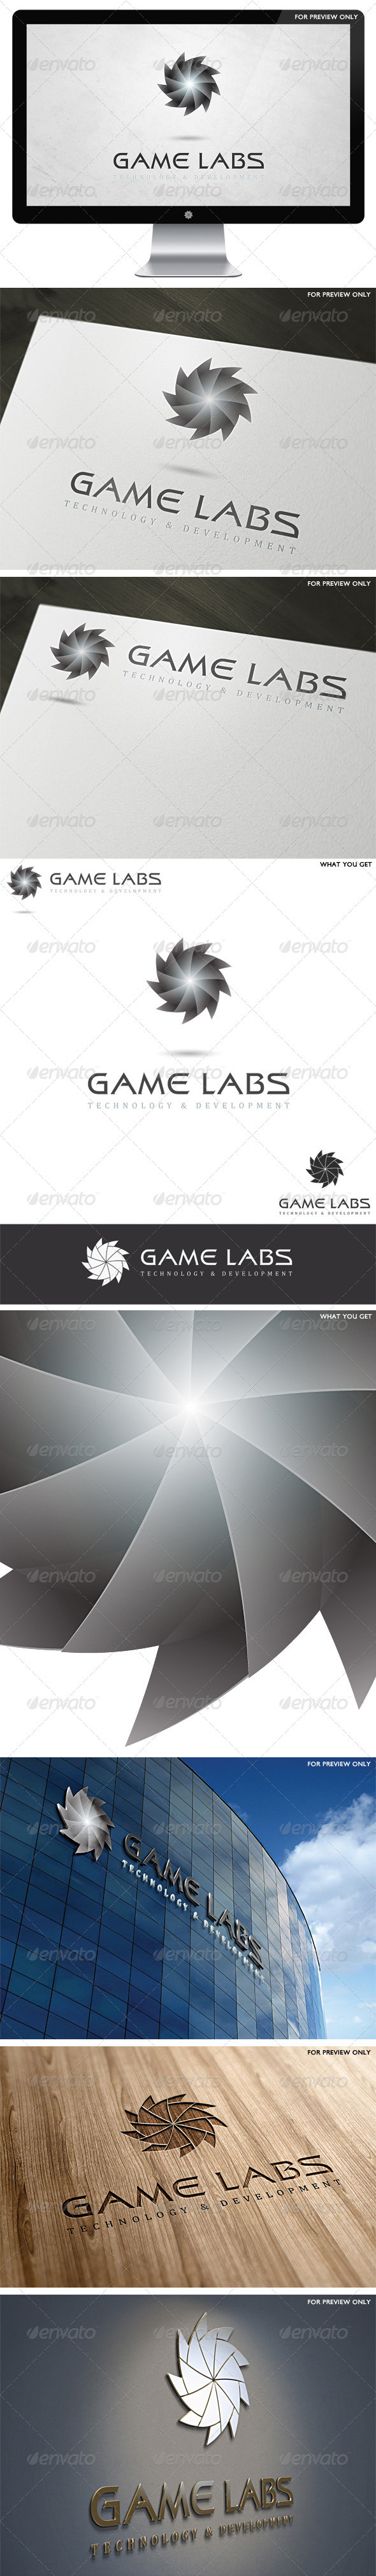 3D Game Labs Logo Template v2 - 3d Abstract